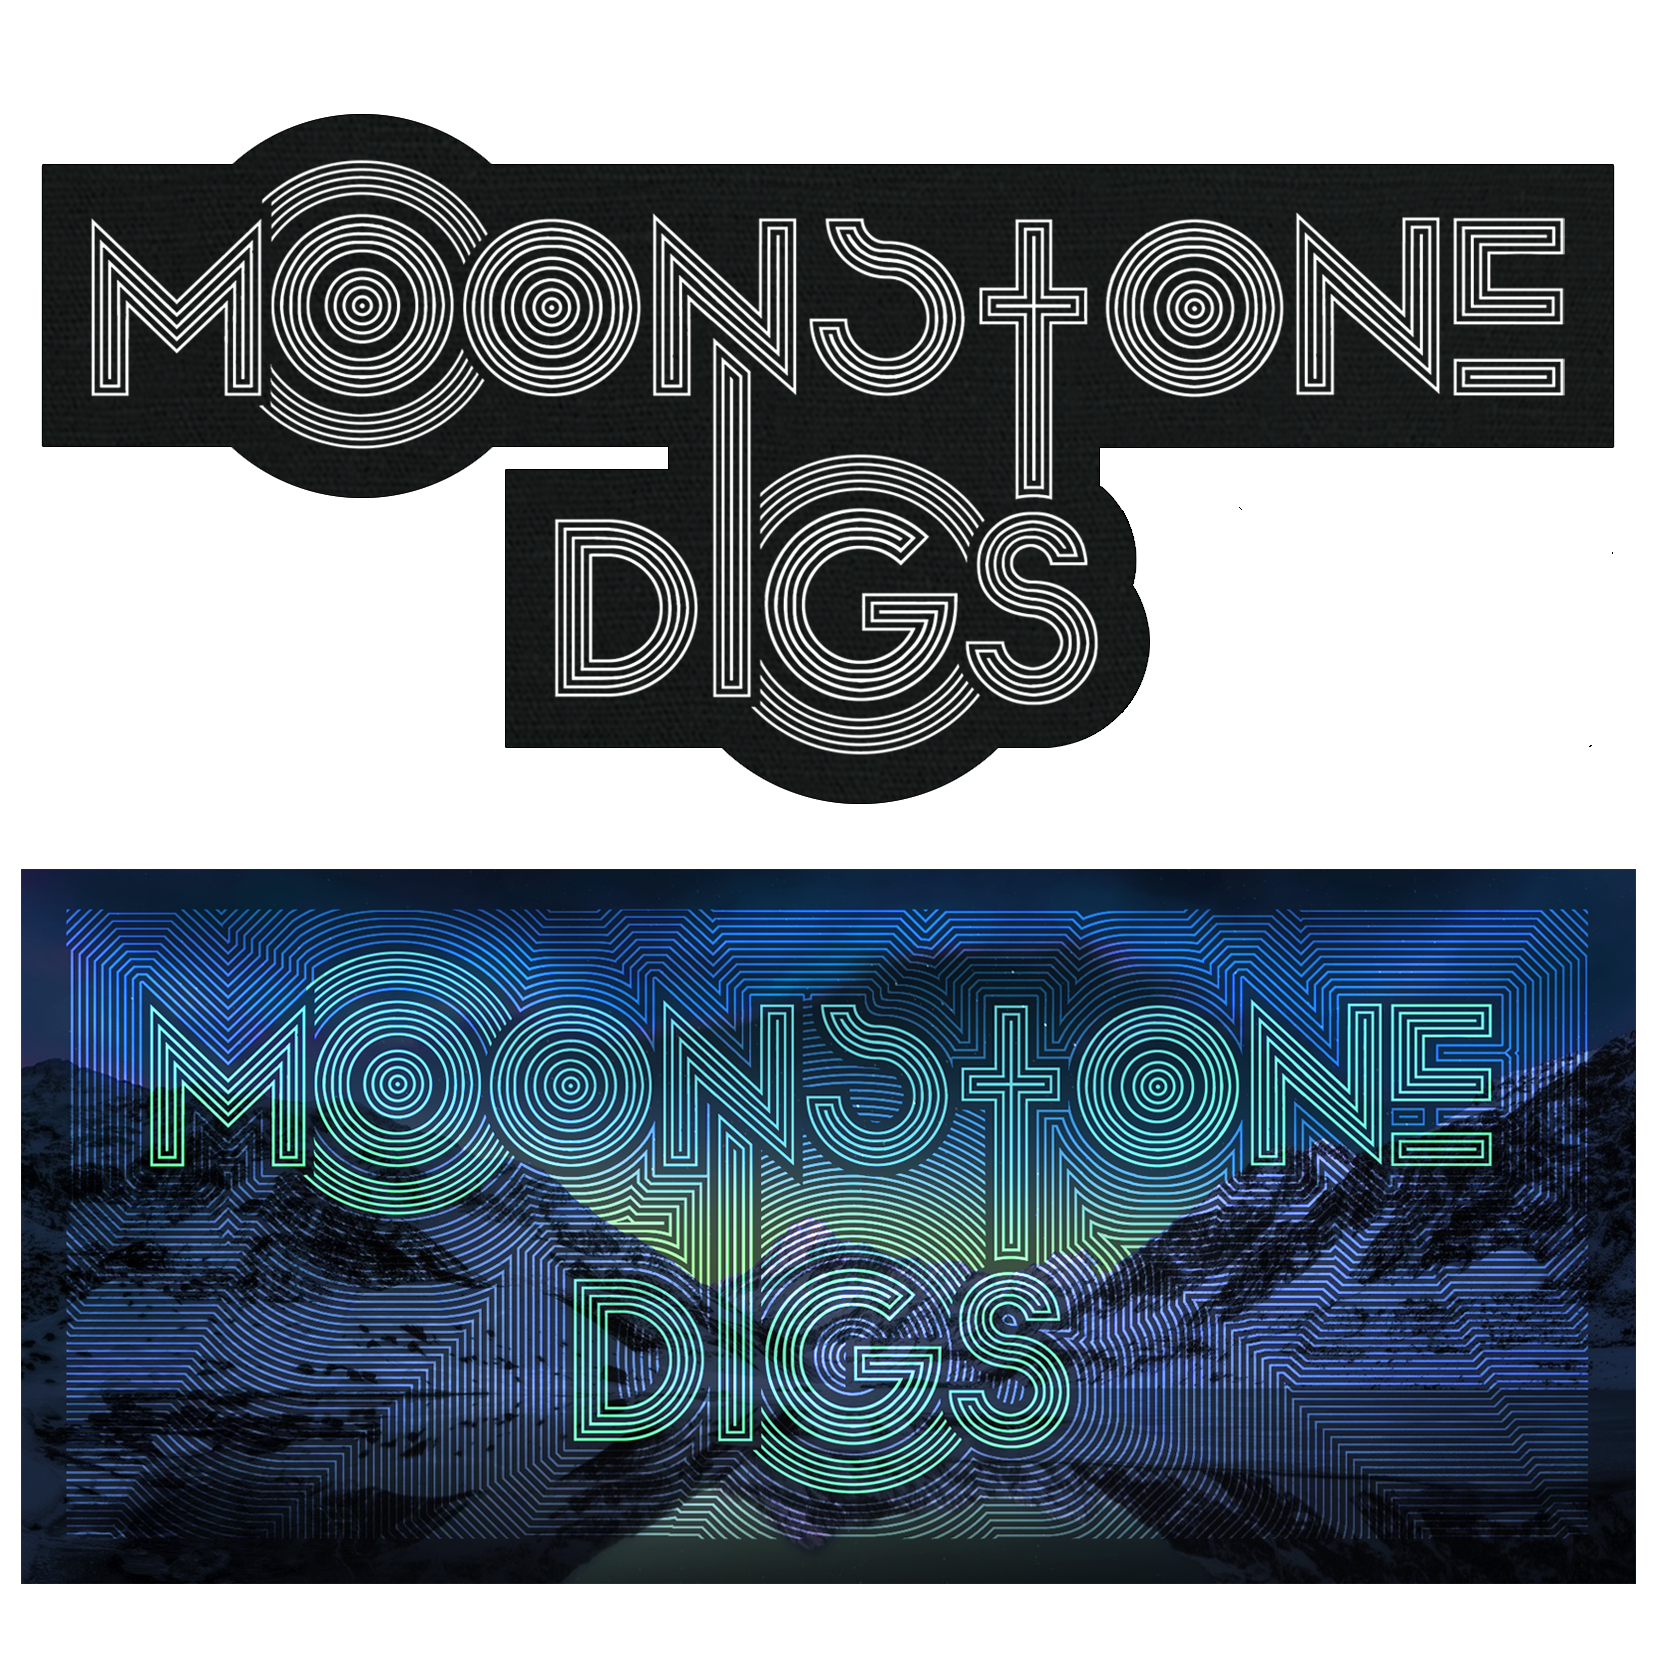 Multiple different versions of the hypnotic logo for the music act Moonstone Digs out of Vancouver, British Columbia, Canada